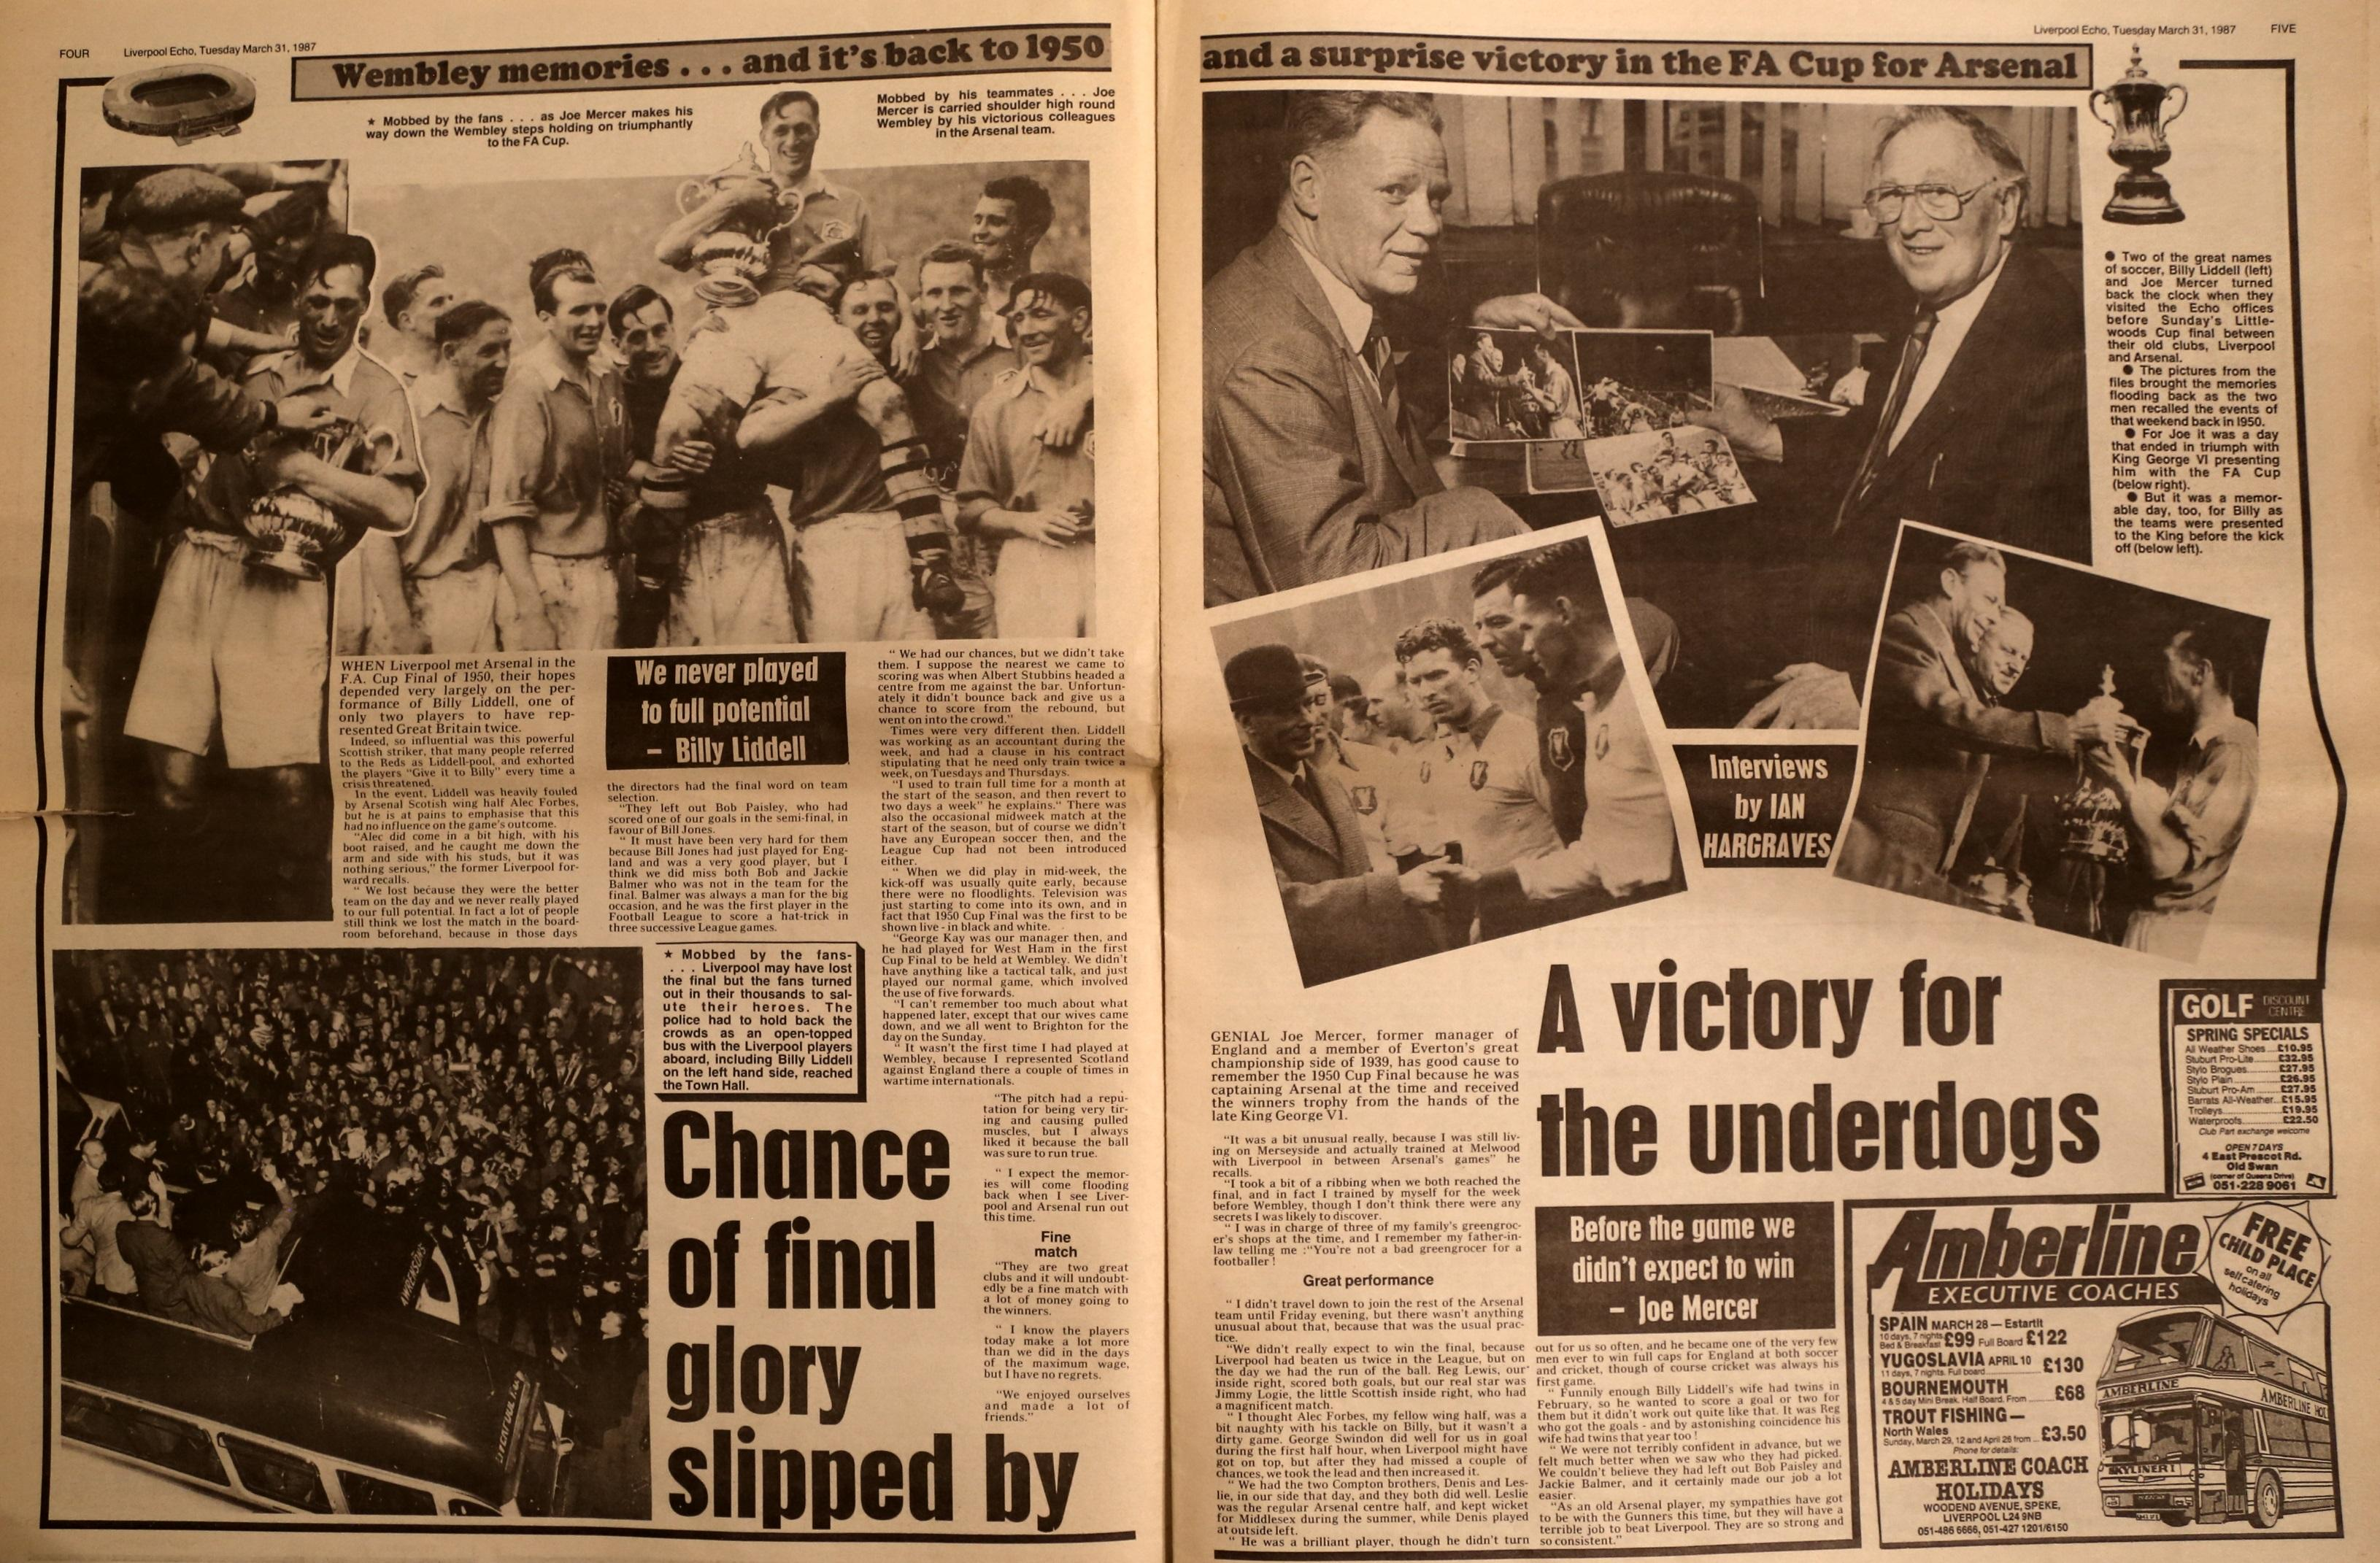 Chance of final glory slipped by - The Echo on 29 April 1950